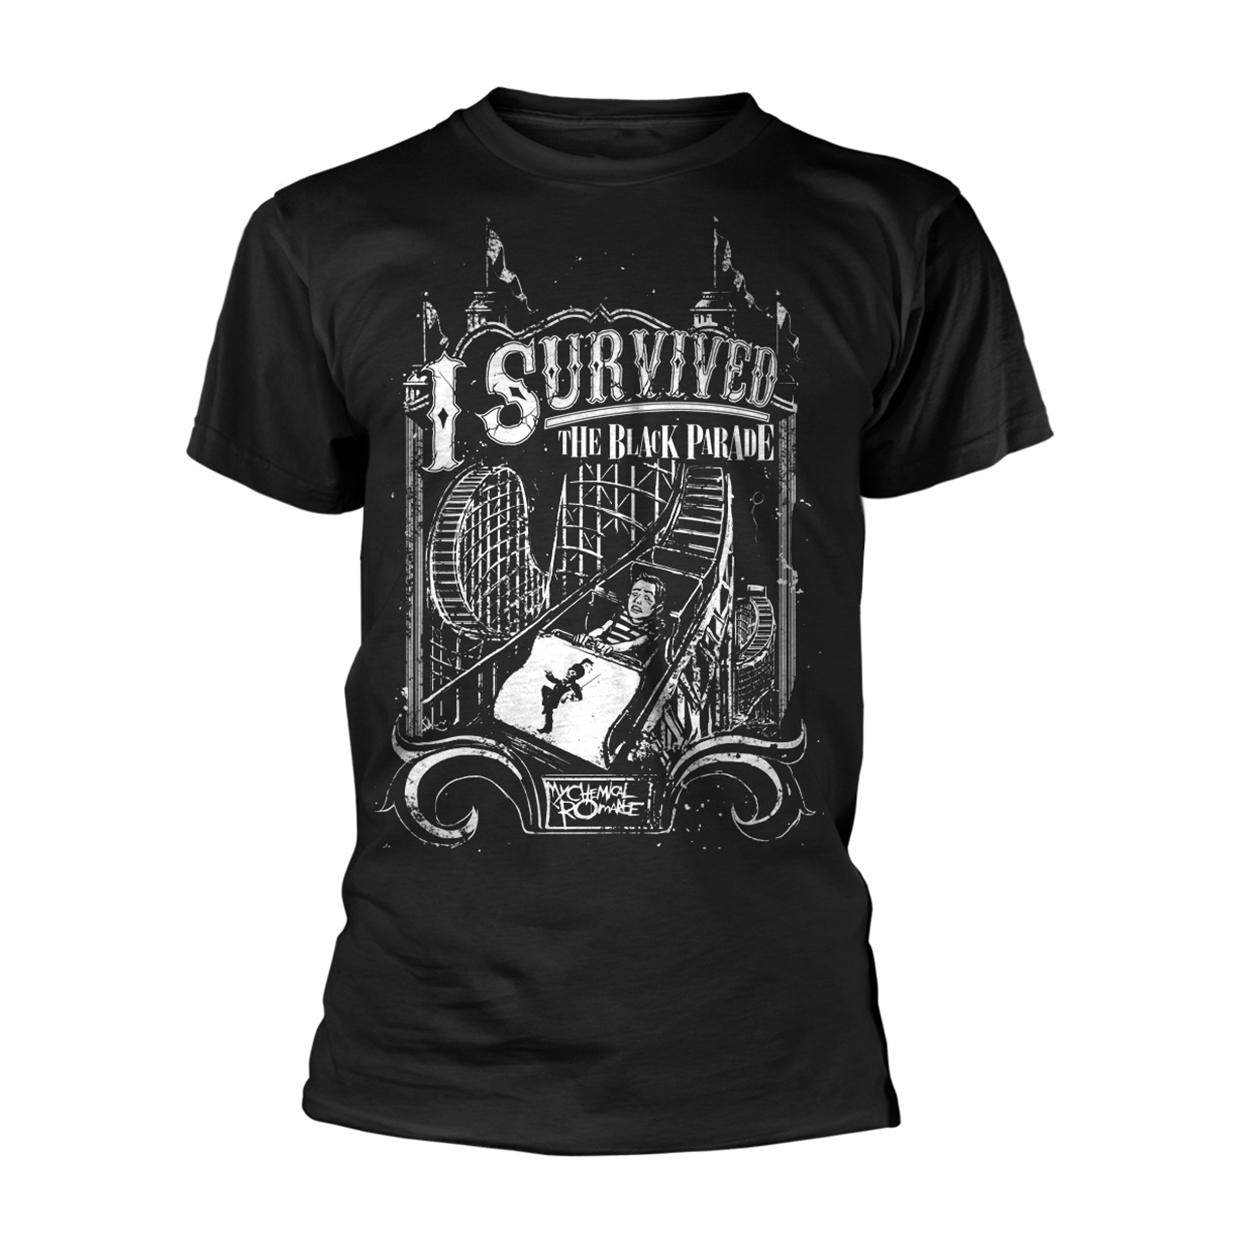 I Survived - My Chemical Romance - Merchandise - PHM - 0803343163957 - July 17, 2017